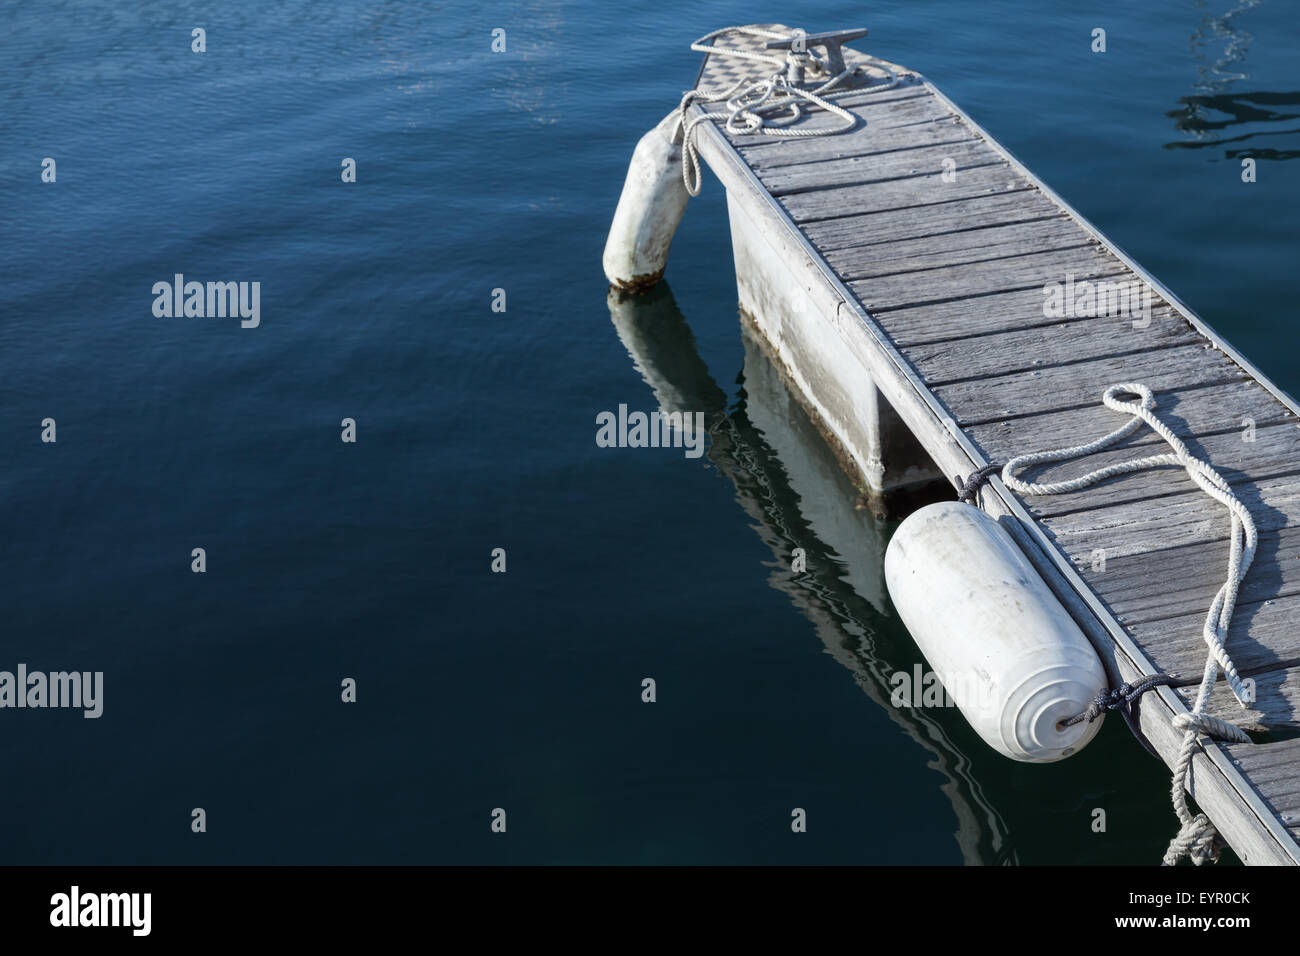 Small floating pier for yachts mooring with white fenders - Stock Image